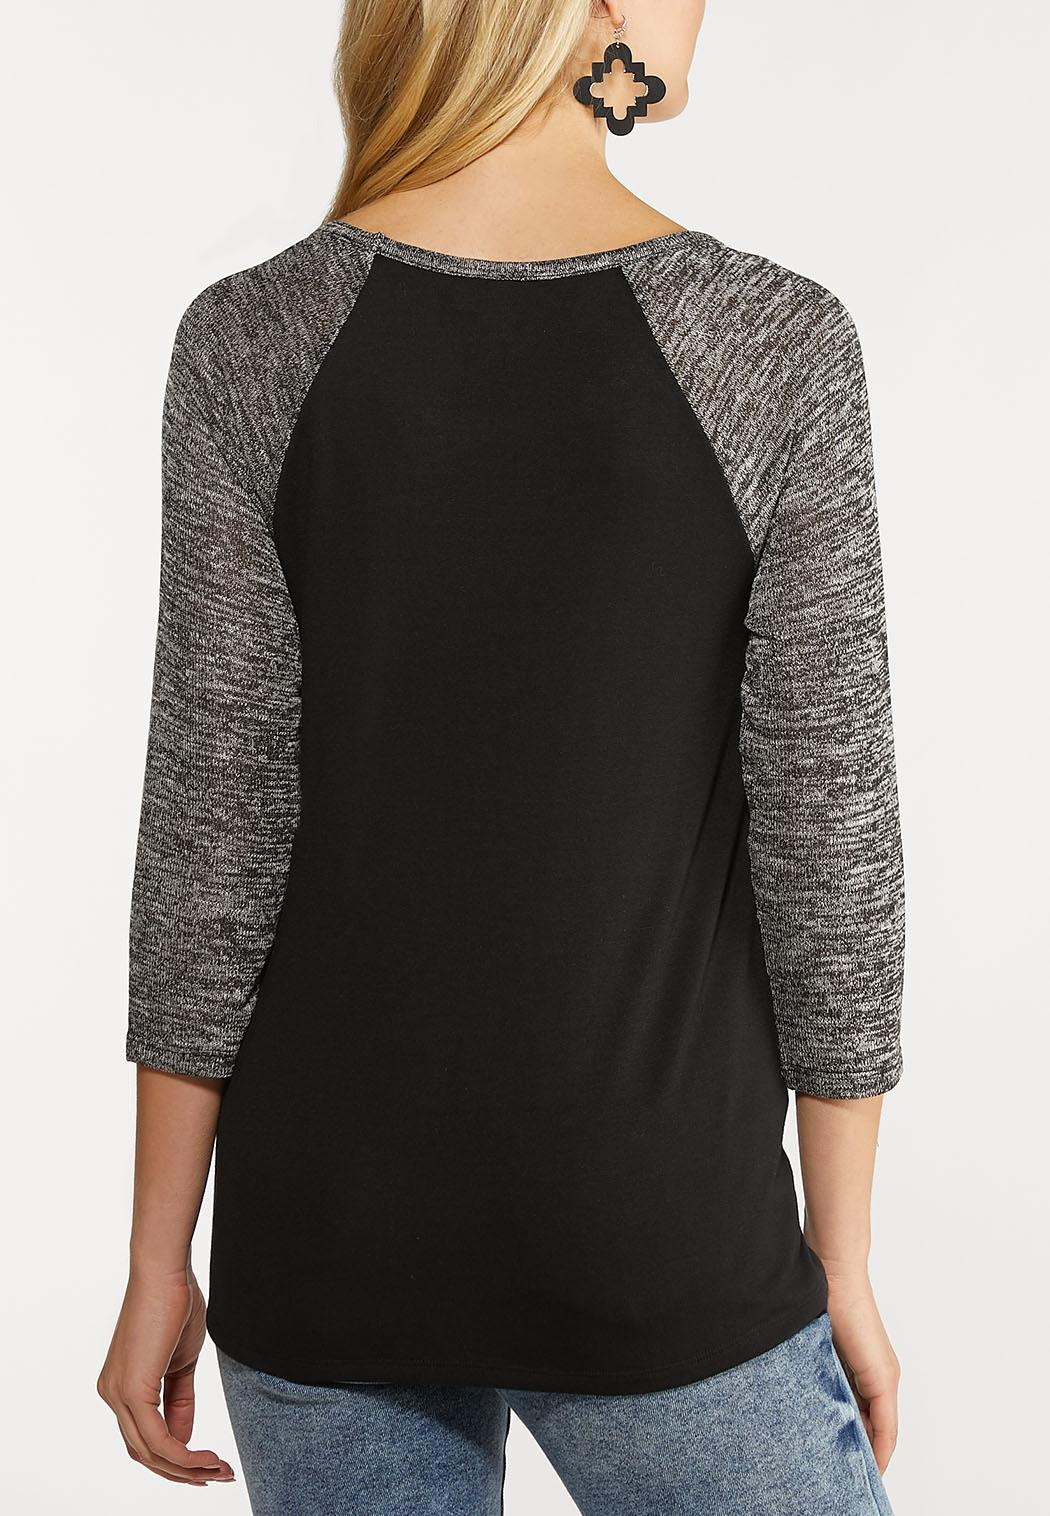 Fur Mama Knotted Top (Item #44109007)